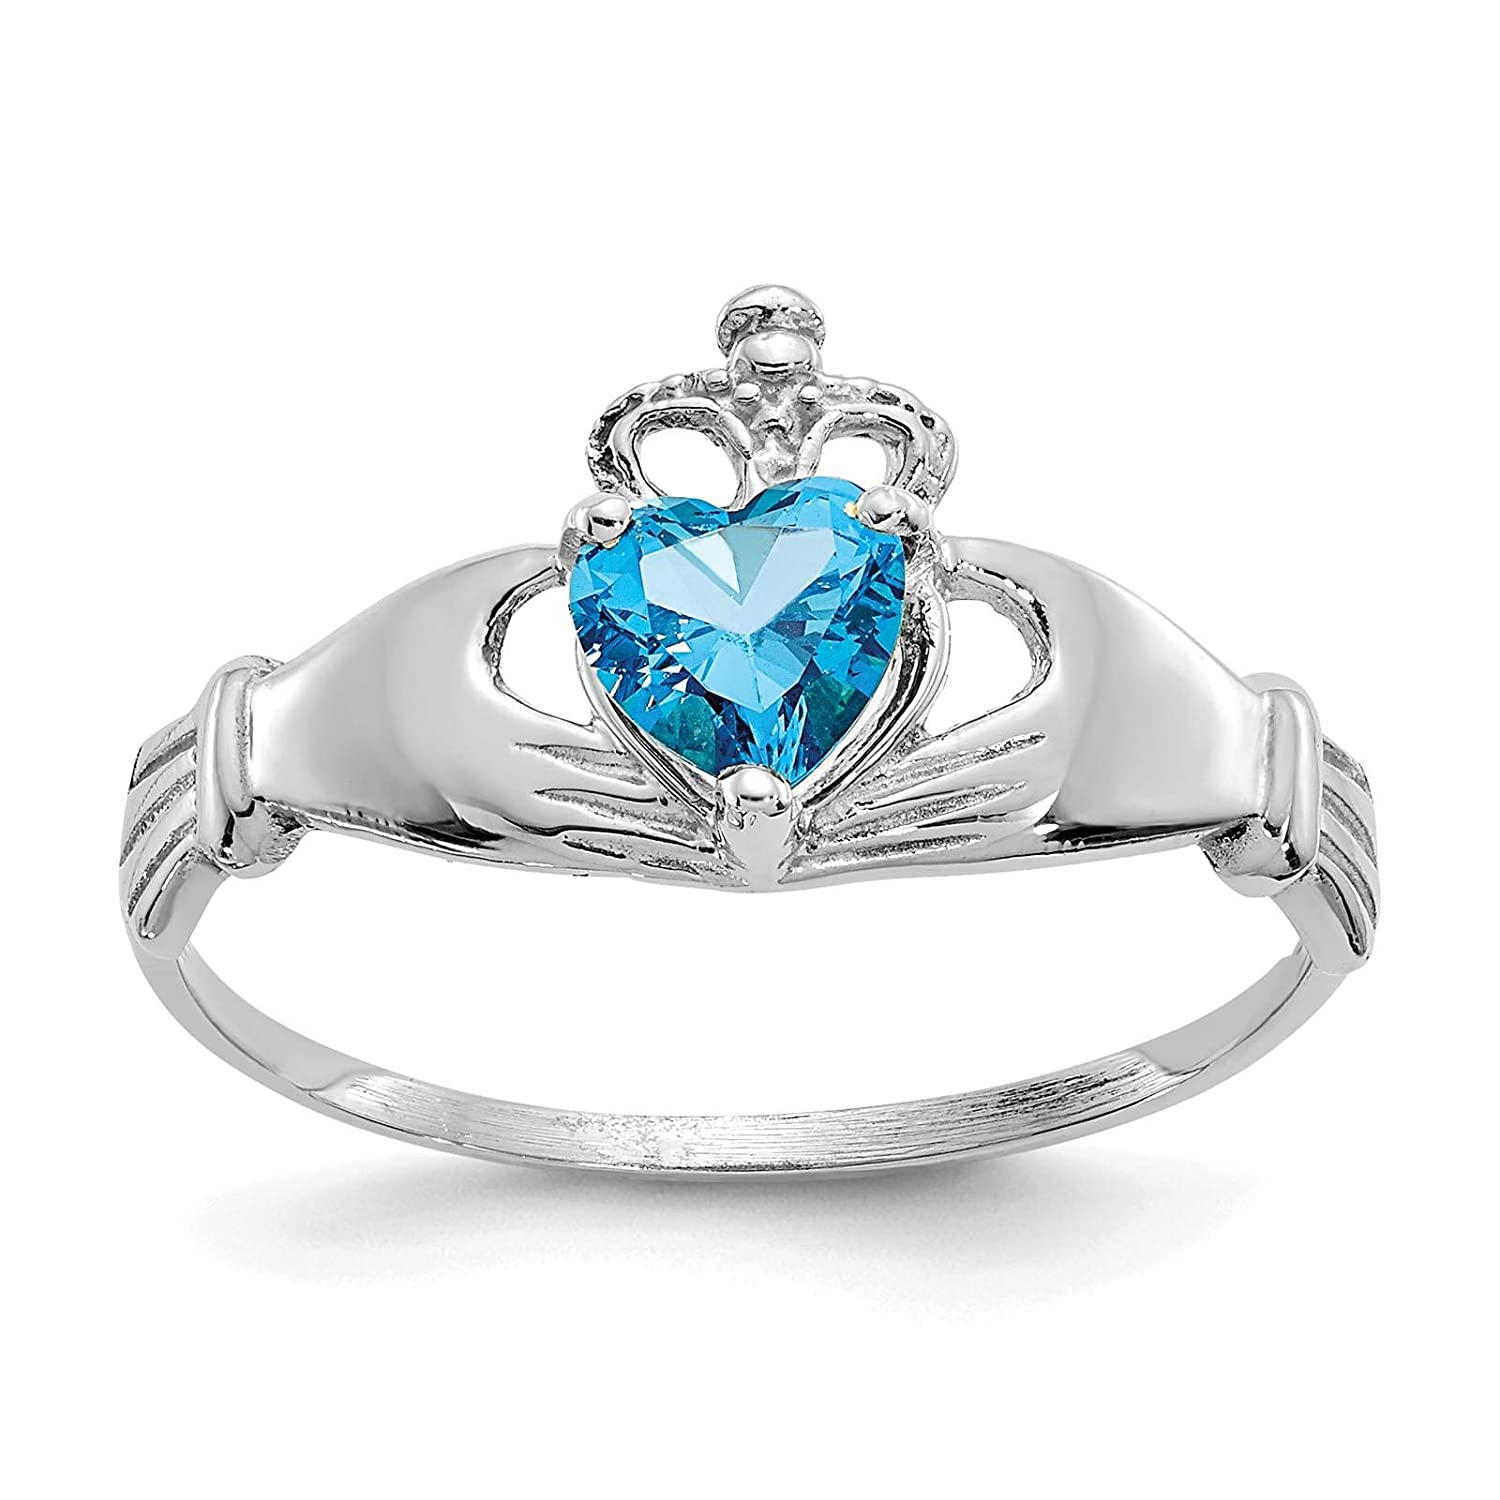 14K White Gold Polished CZ December Stone Claddagh Heart Ring Size 7